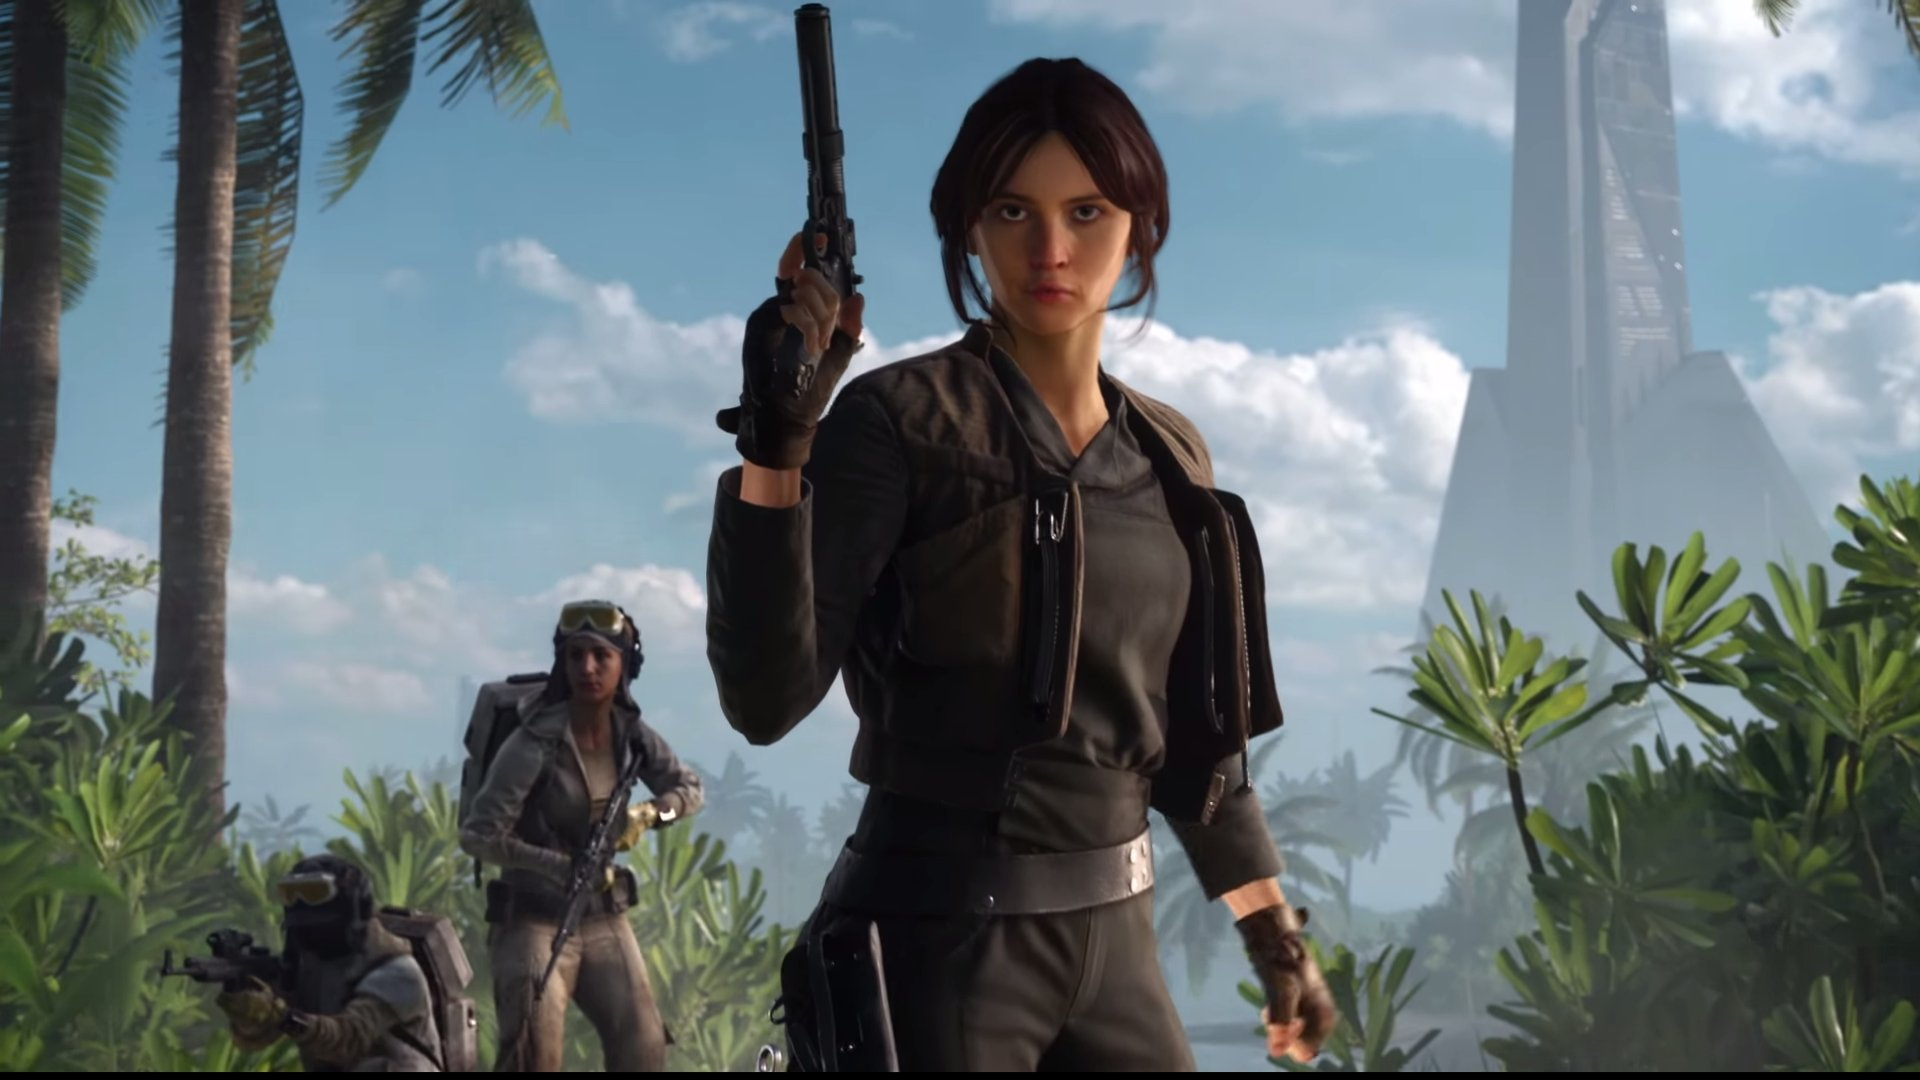 I would totally watch a Star Wars buddy cop show called Jyn and Tonic